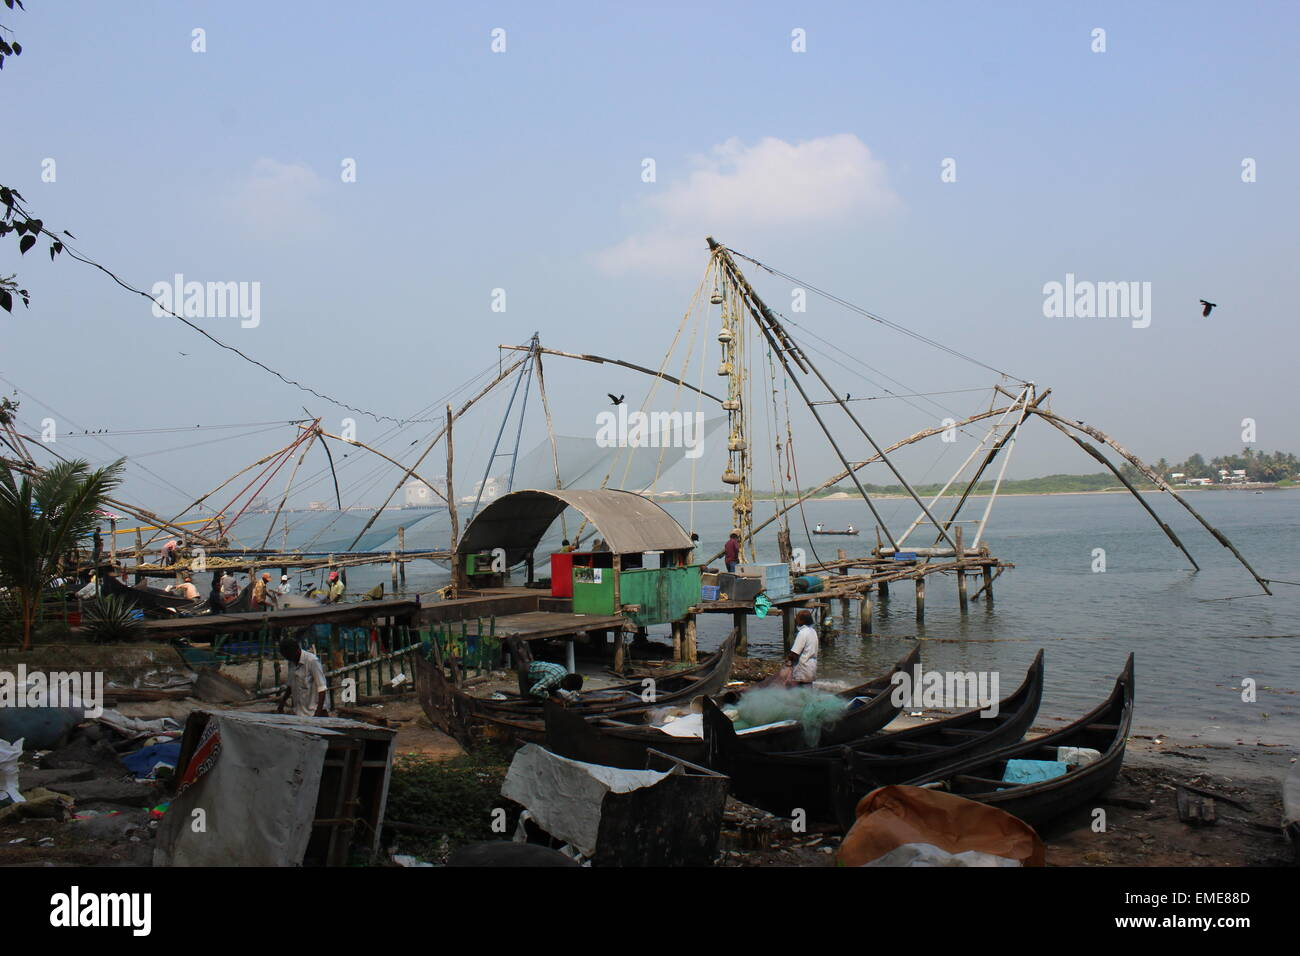 Handling the 'Chinese Fishing Nets' on the waterfront at Fort Cochin. - Stock Image